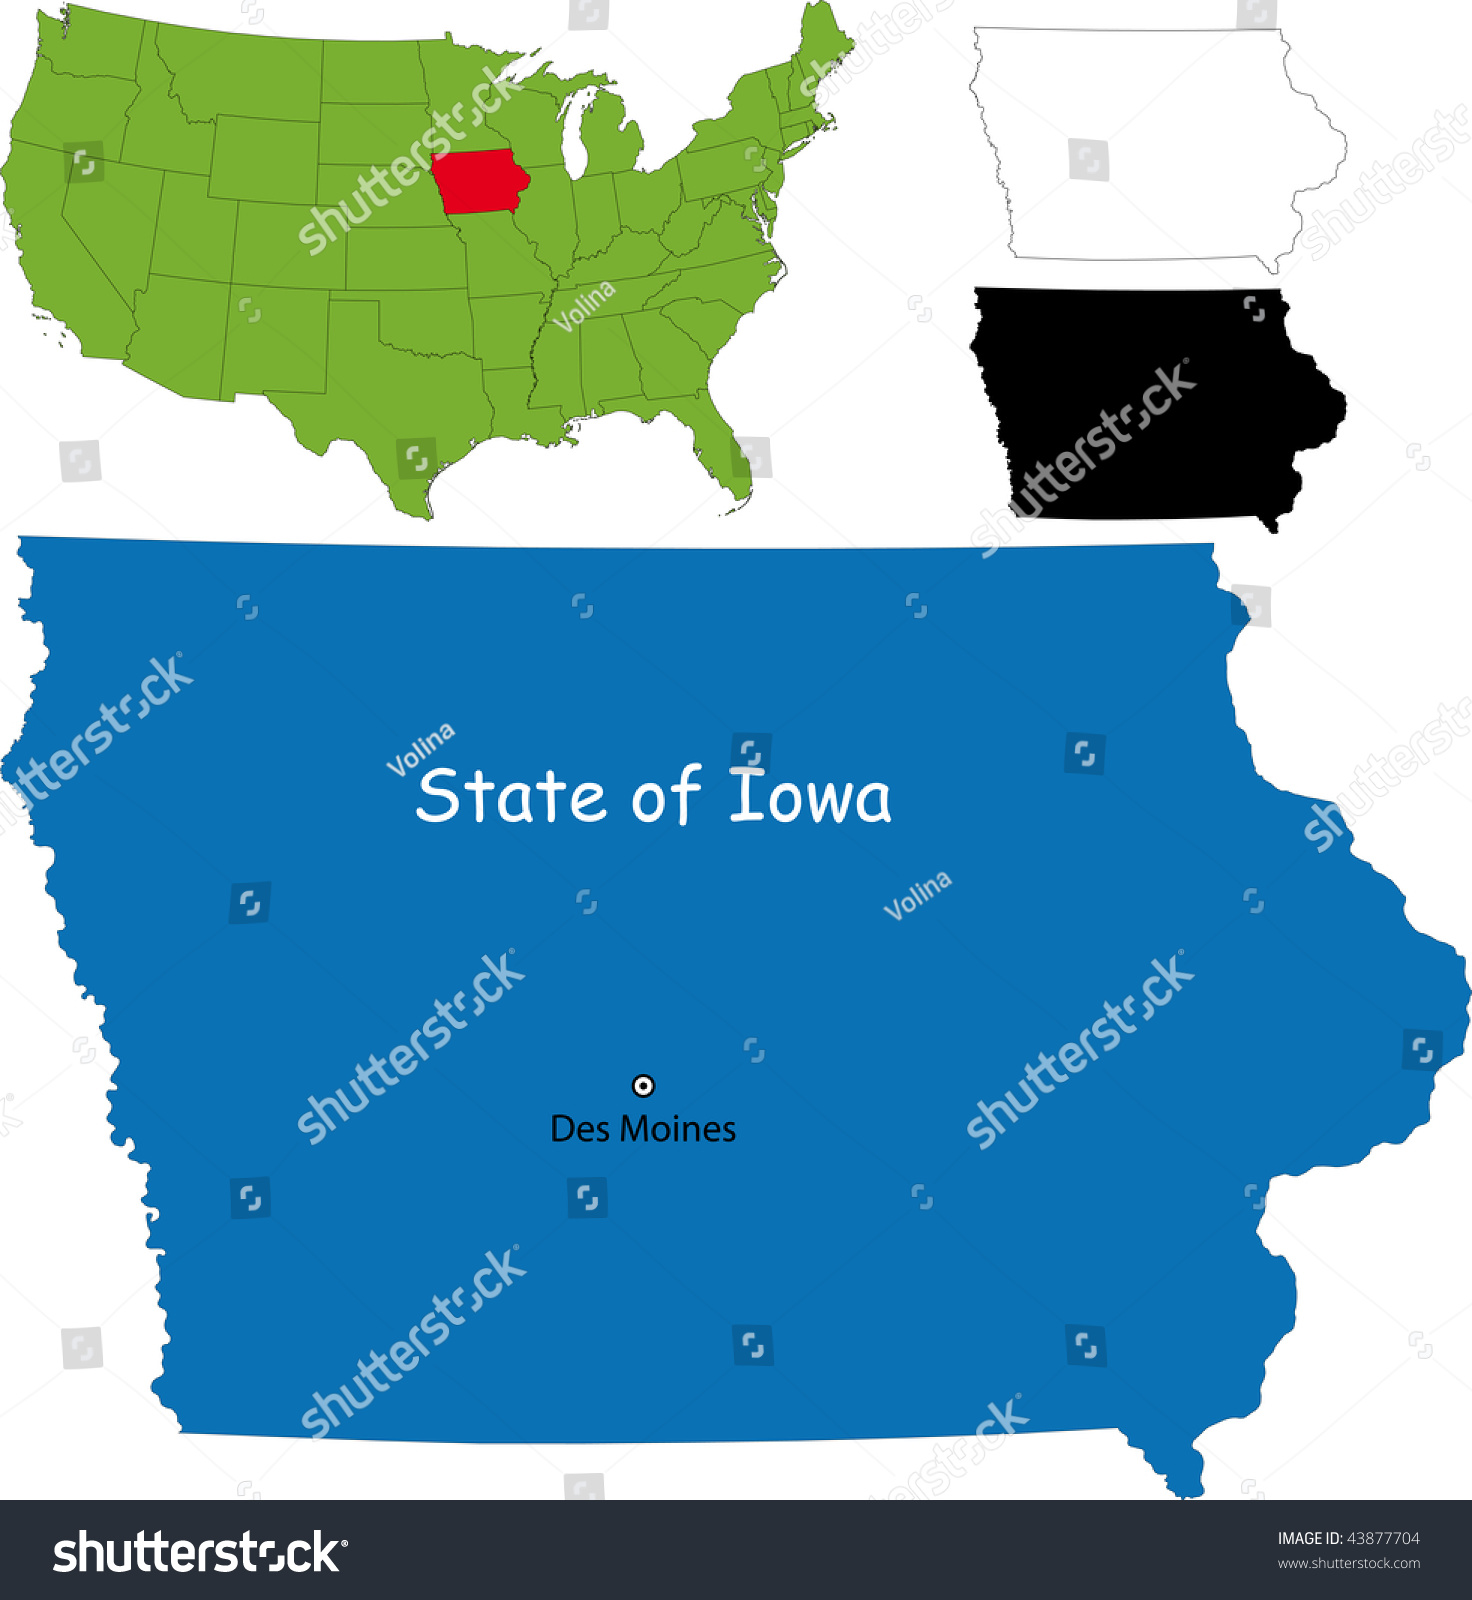 Map Of State Of Iowa Usa Iowa State Map With Corn Field Vector - Iowa state in usa map